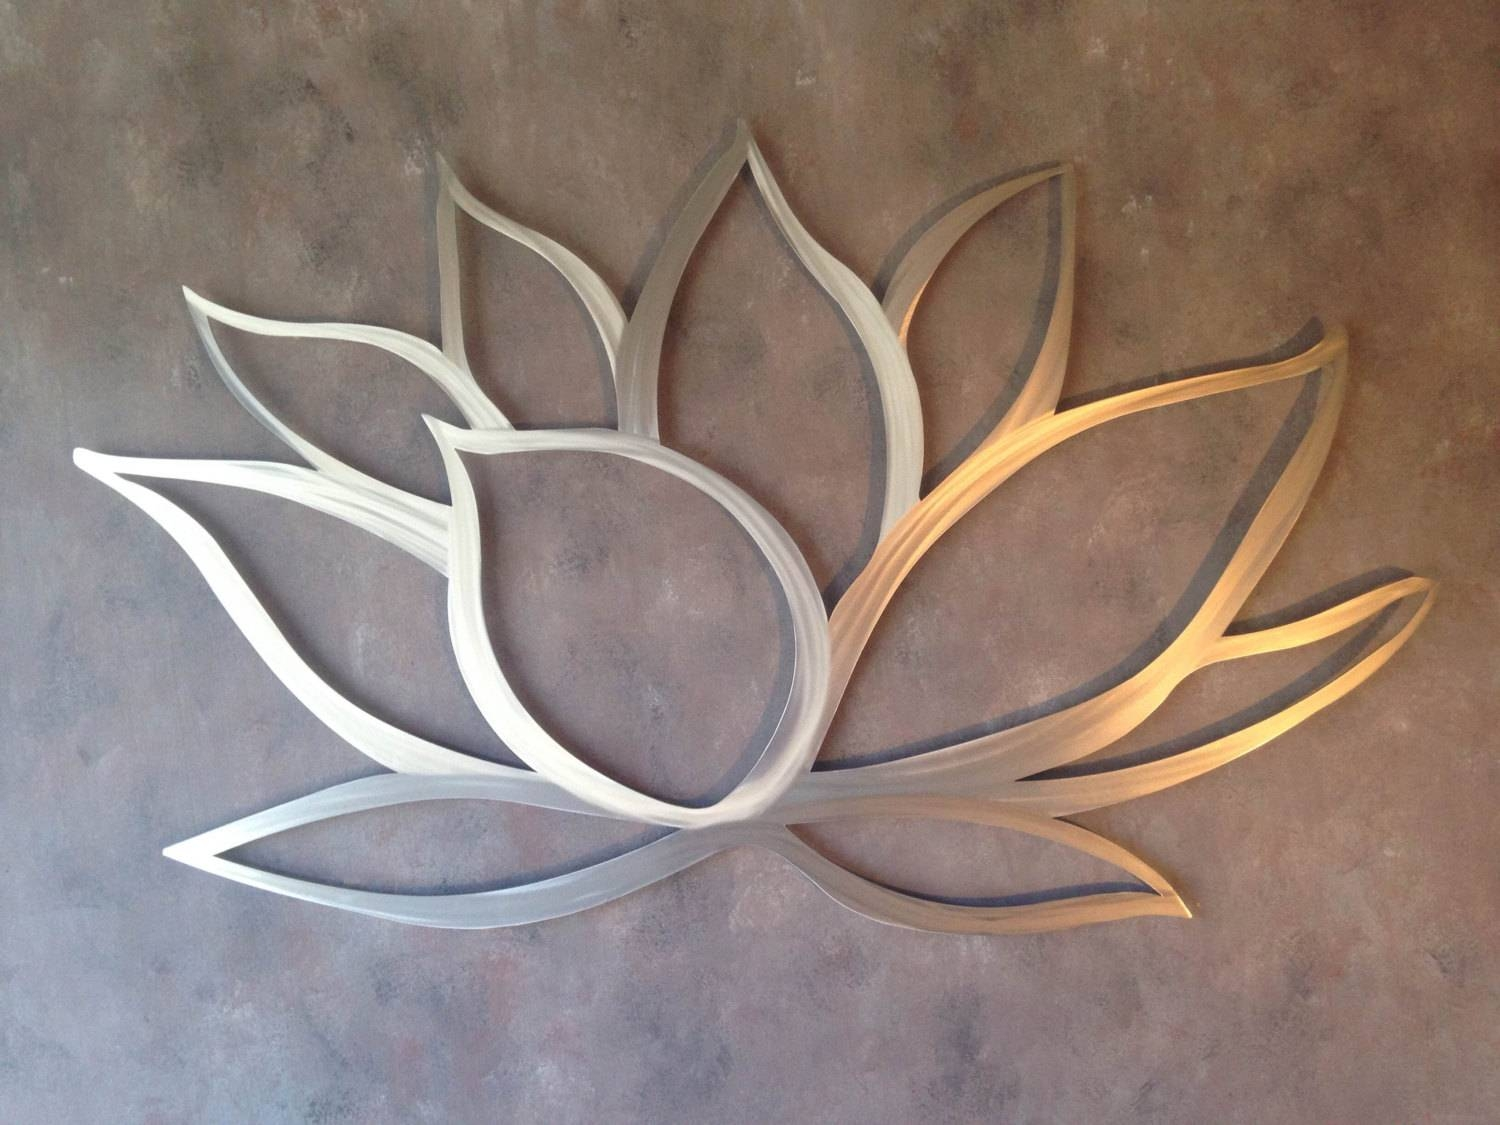 Metal Feng Shui Element Your Home Office Wall Art – Dma Homes | #29247 With Most Recently Released Elements Metal Wall Art (View 11 of 20)